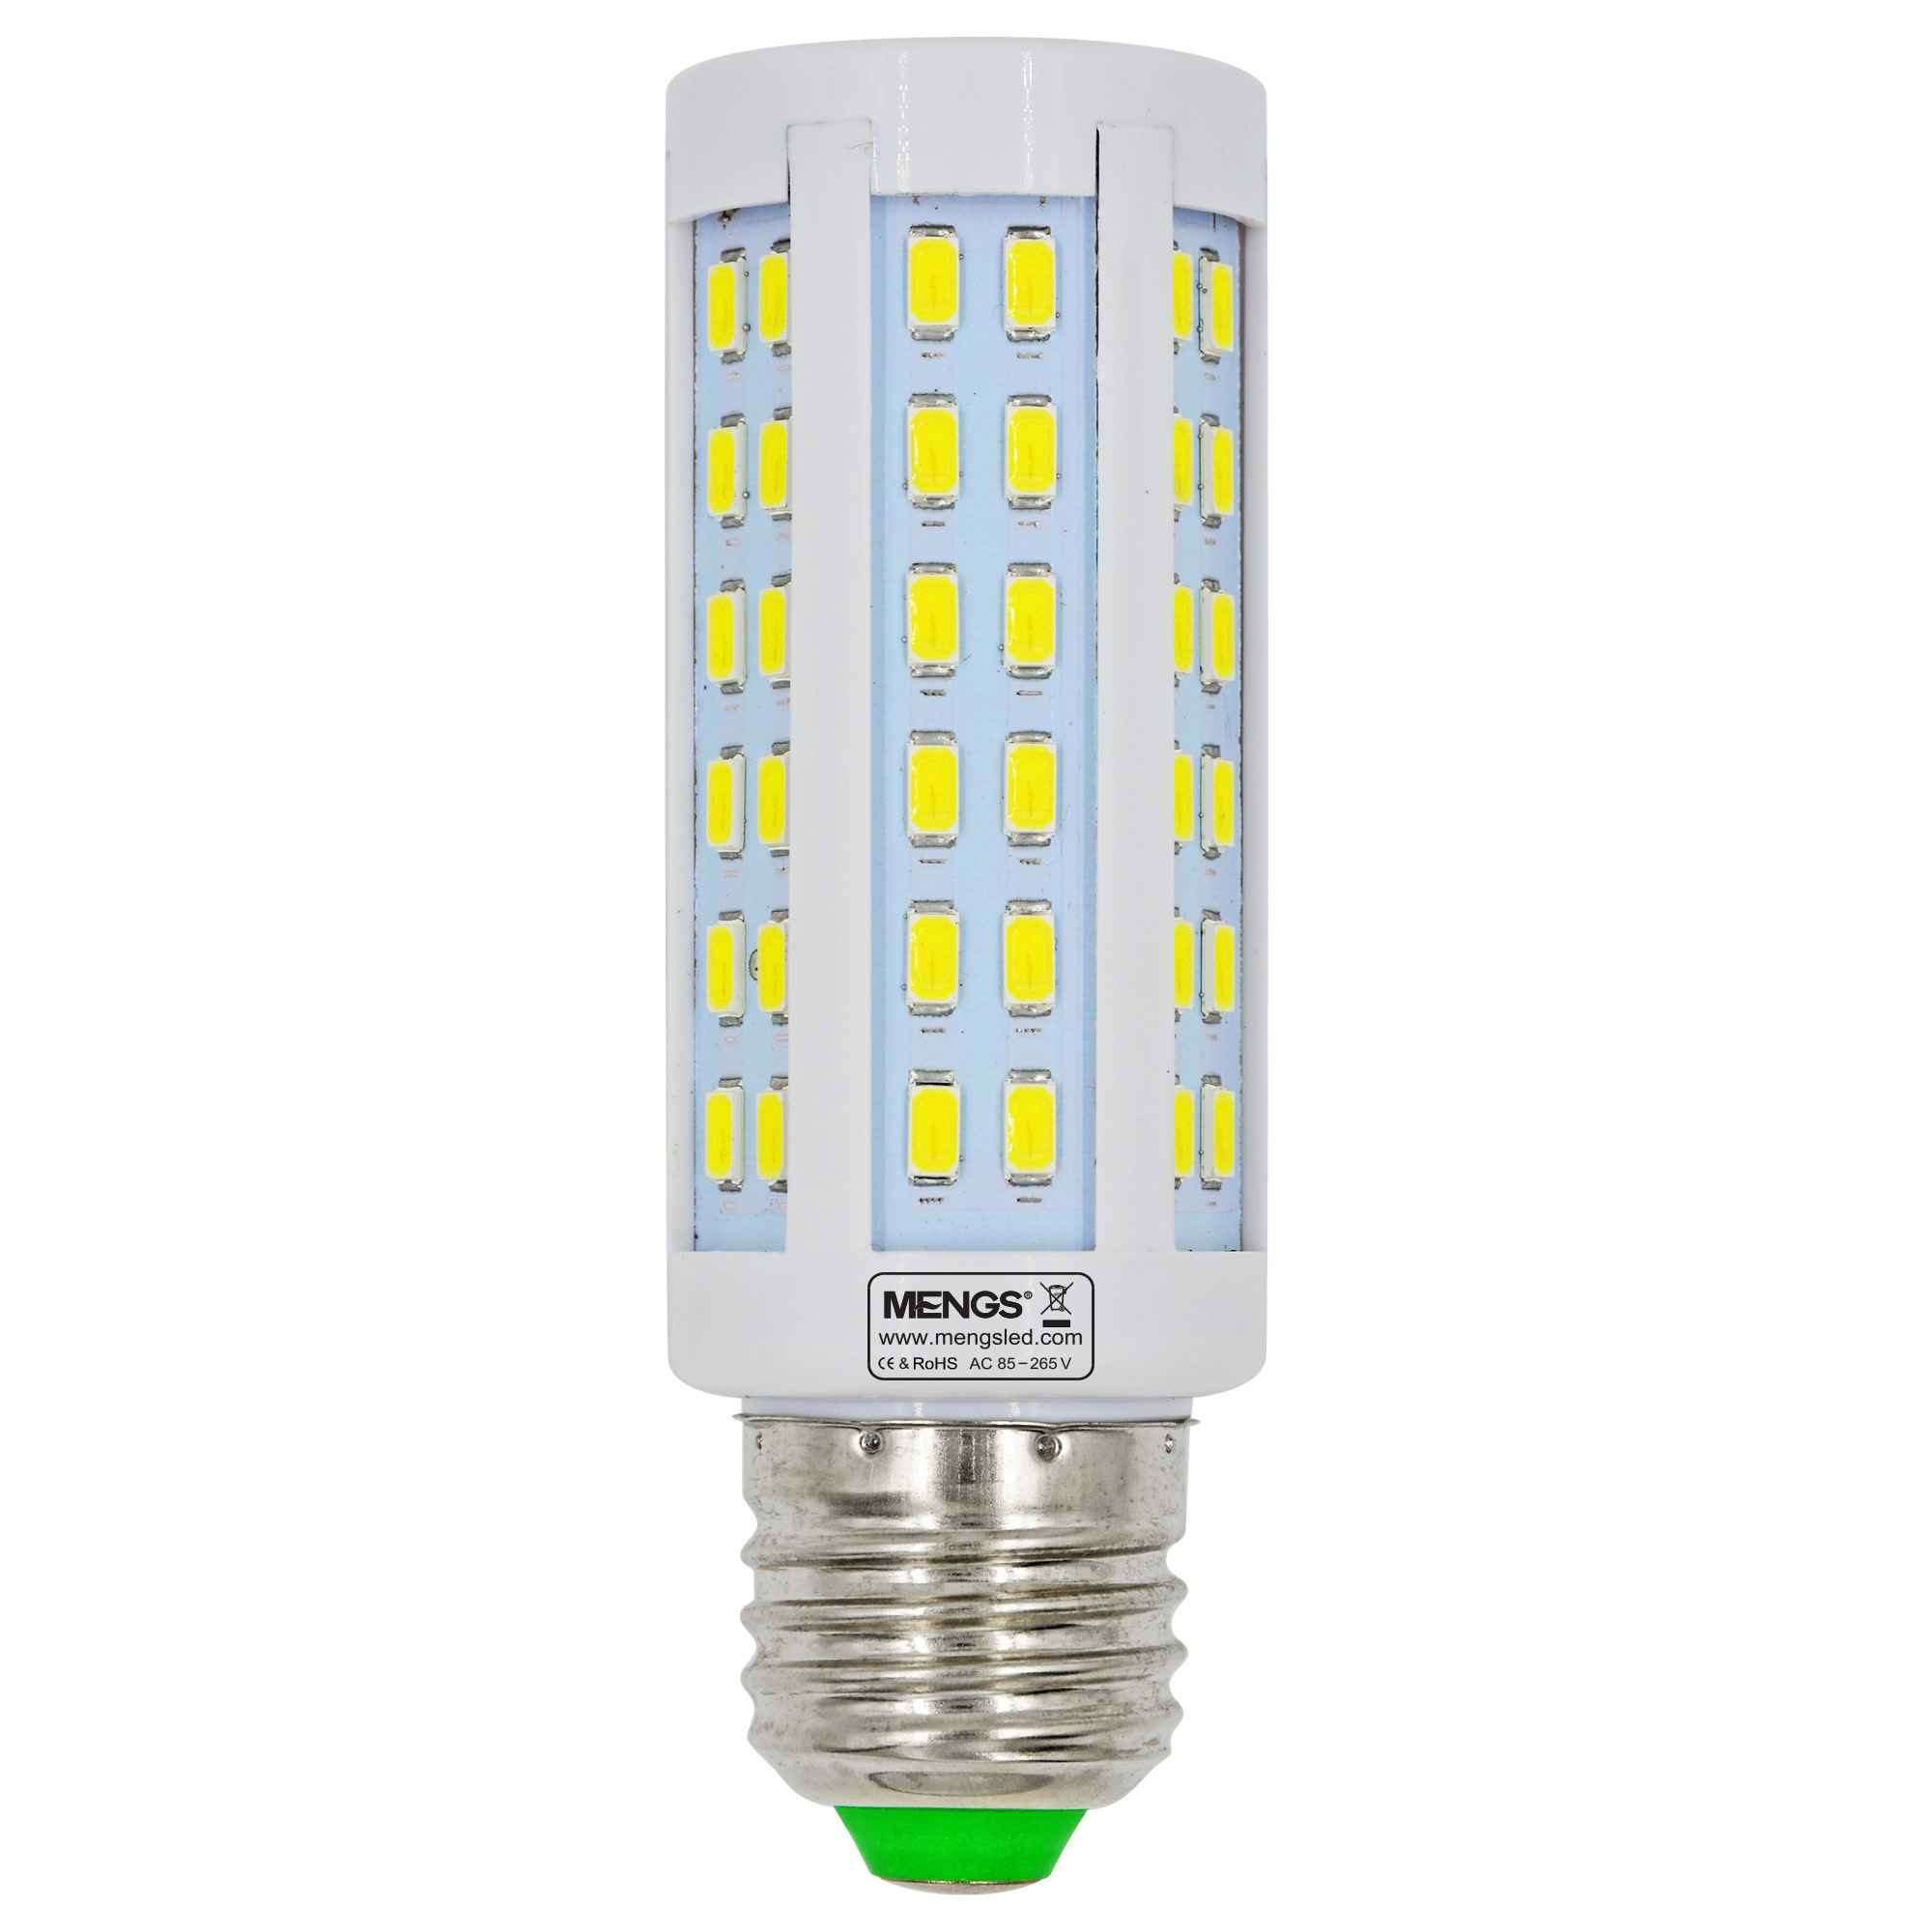 MENGS® E27 10W  LED Corn Light 84x 5730 SMD LED Bulb Lamp AC 85-265V in Cool White Energy-Saving Light